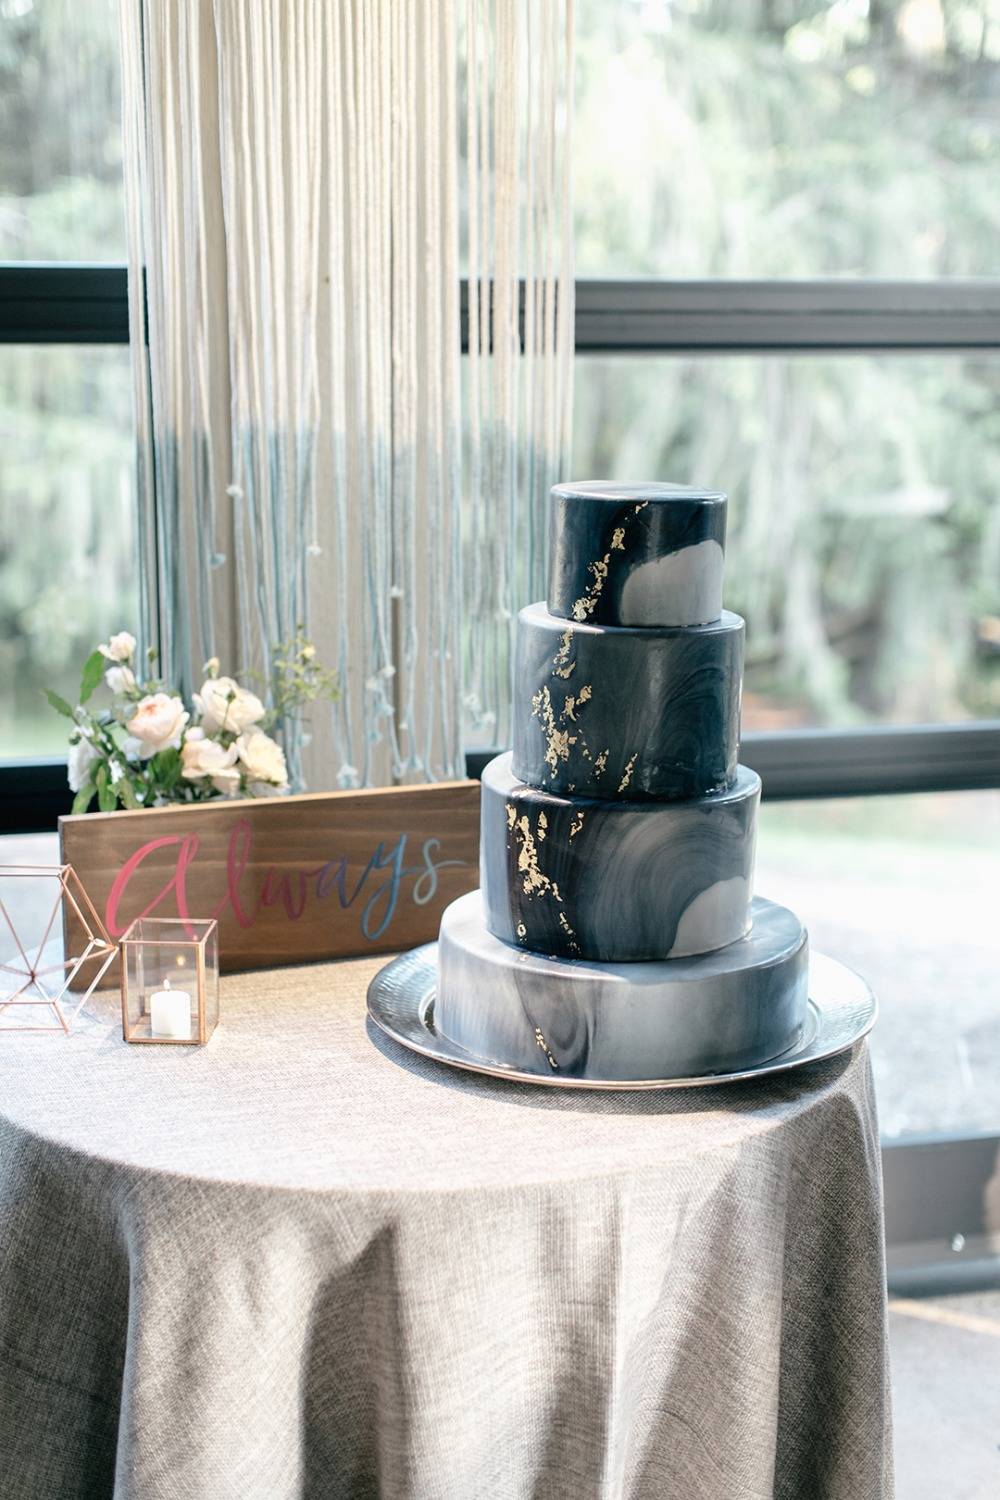 Geode wedding cake with gold foiling